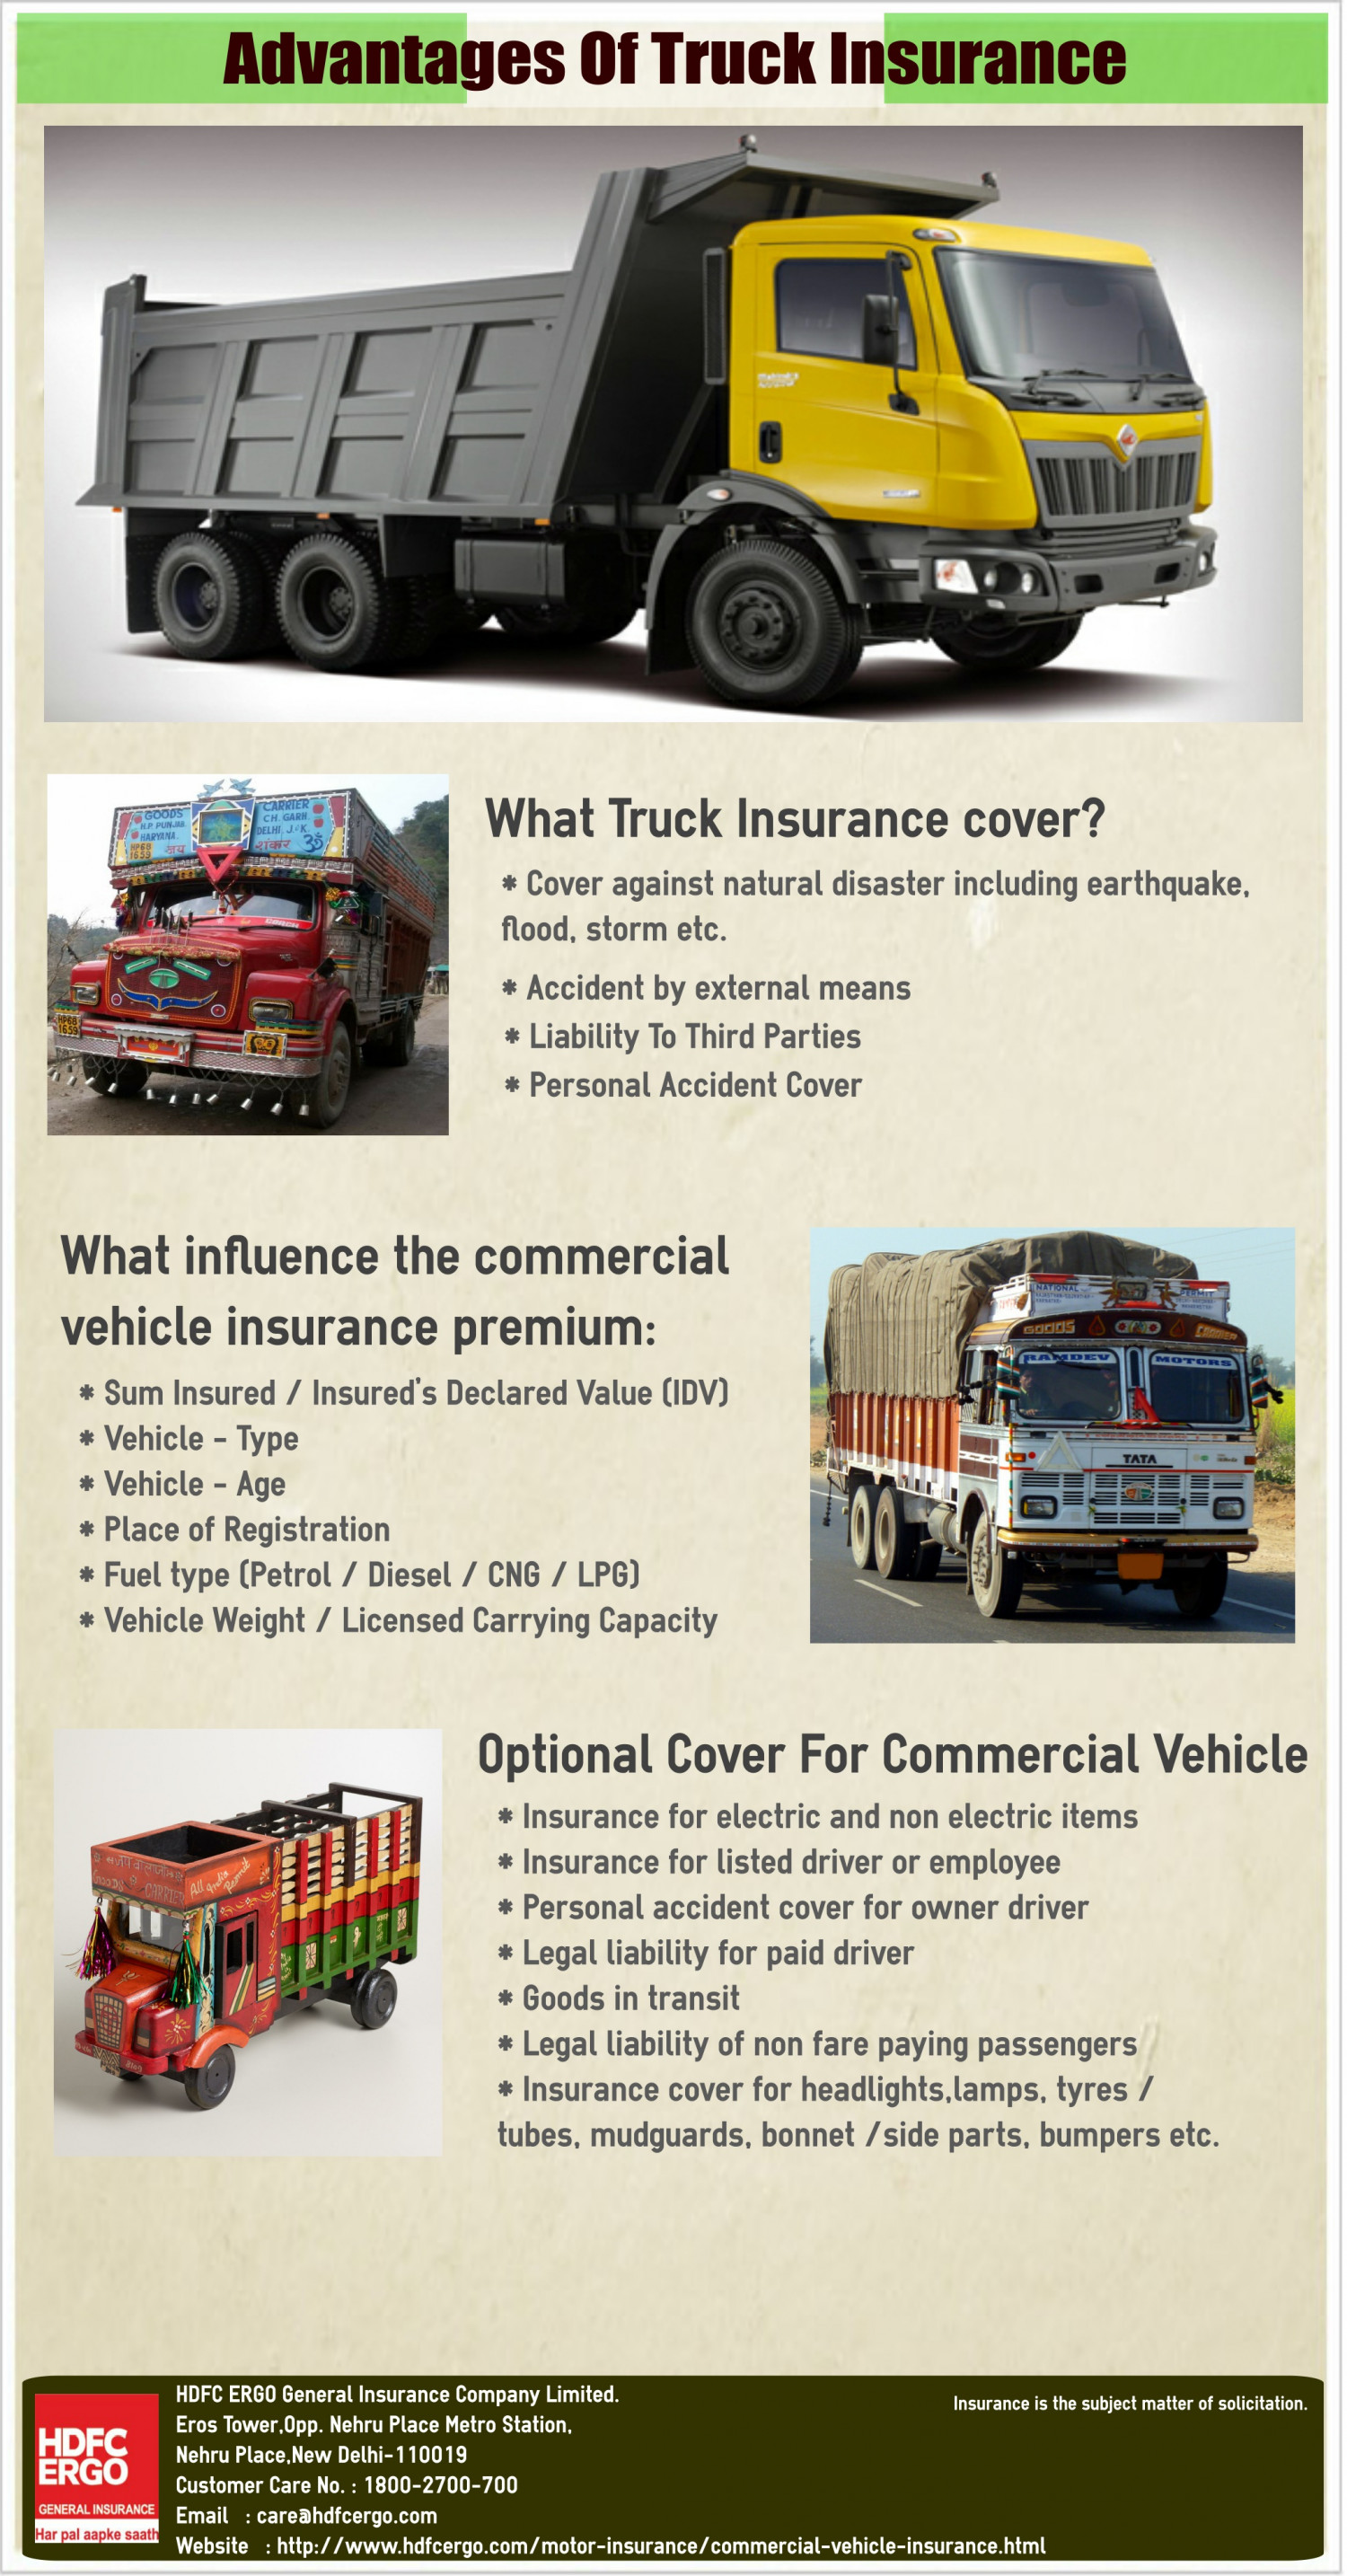 Advantages Of Truck Insurance Infographic